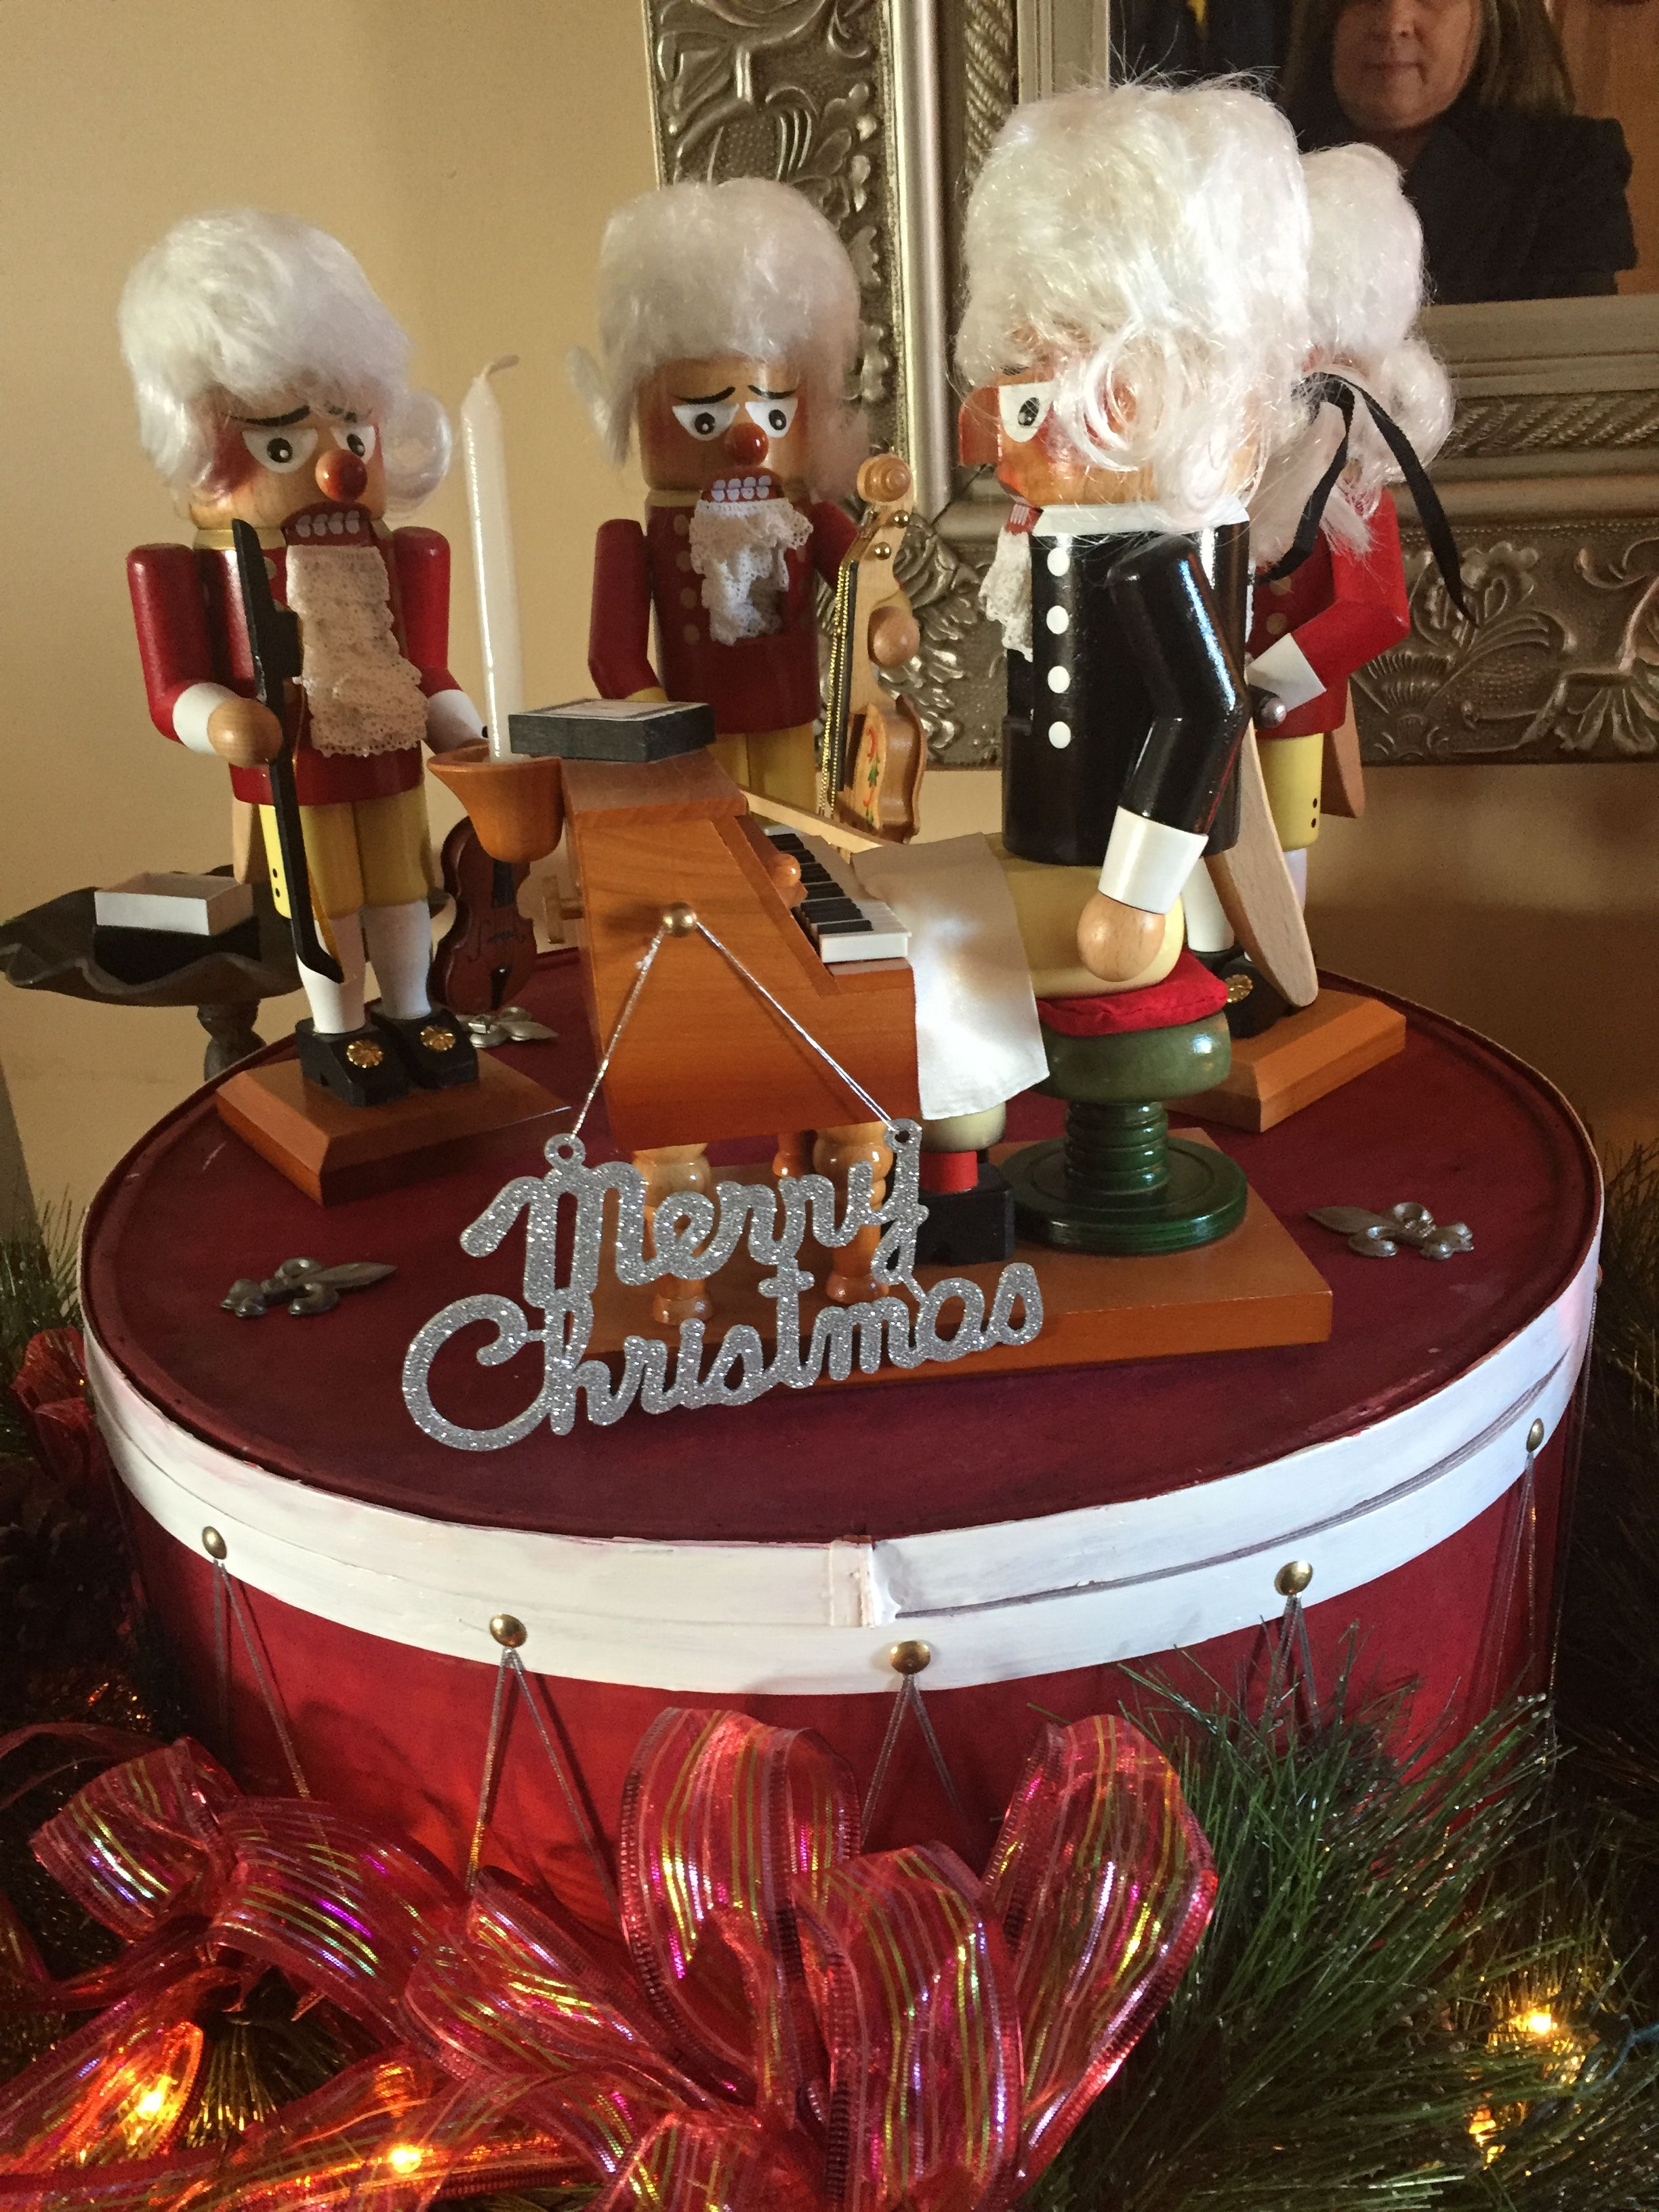 Musical christmas ornaments that play music - Not Crackers That Play Music